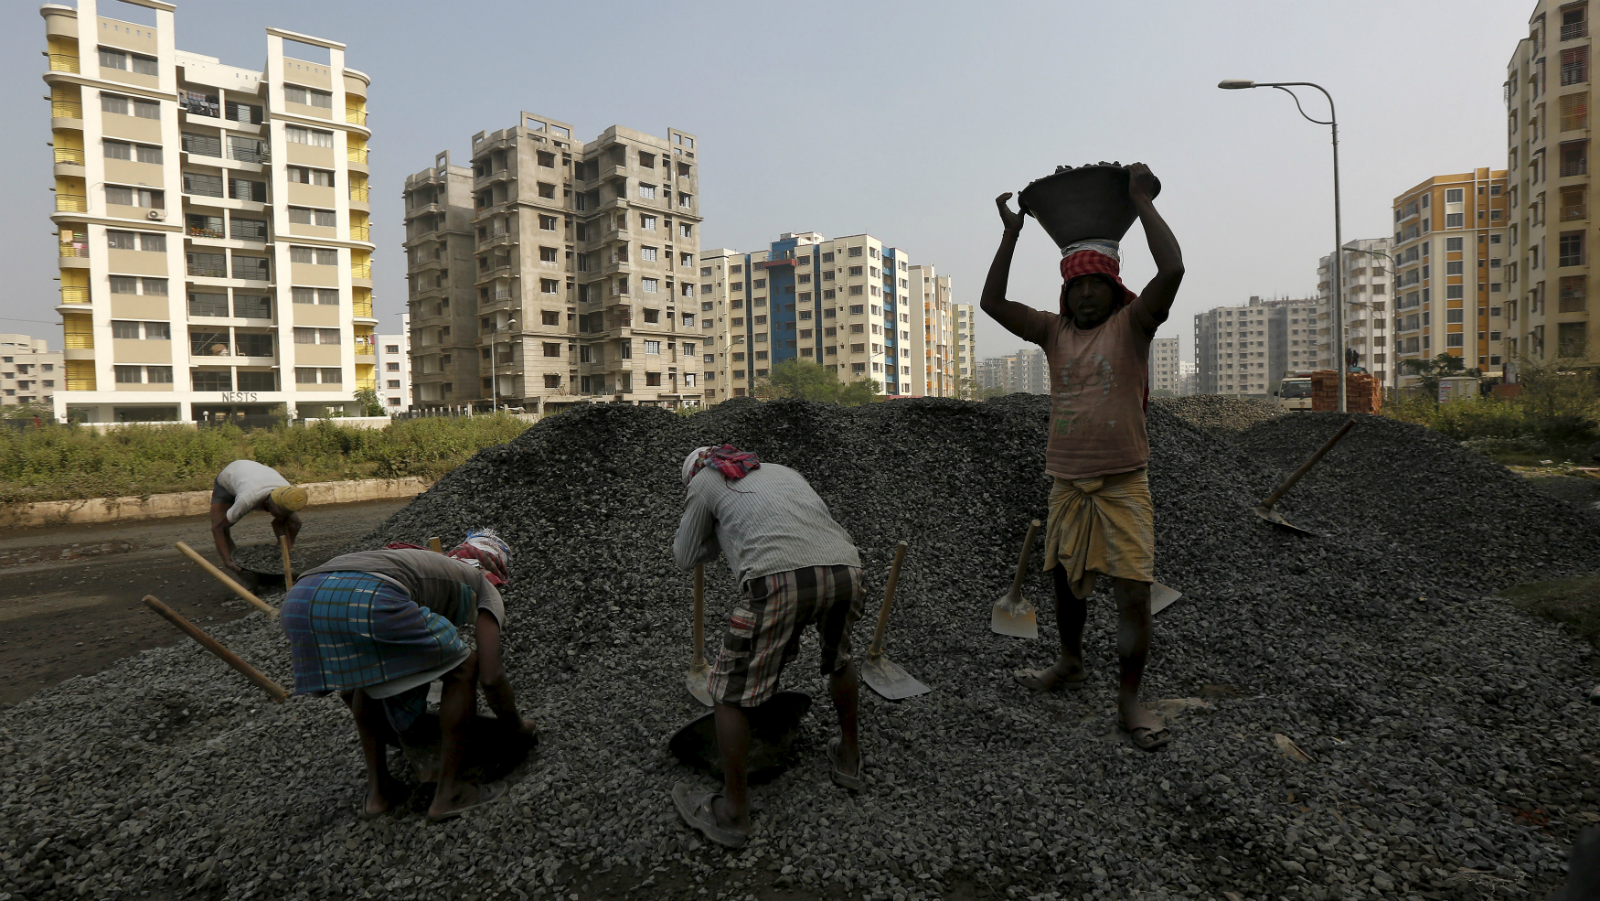 Labourers work at the construction site of a residential complex on the outskirts of Kolkata, India January 23, 2016. India's banks, struggling to boost mainstay corporate loans, are finding a bright spot in a home-buying spree in the country's towns that has driven mortgage-loan growth to the fastest rate in at least six years.